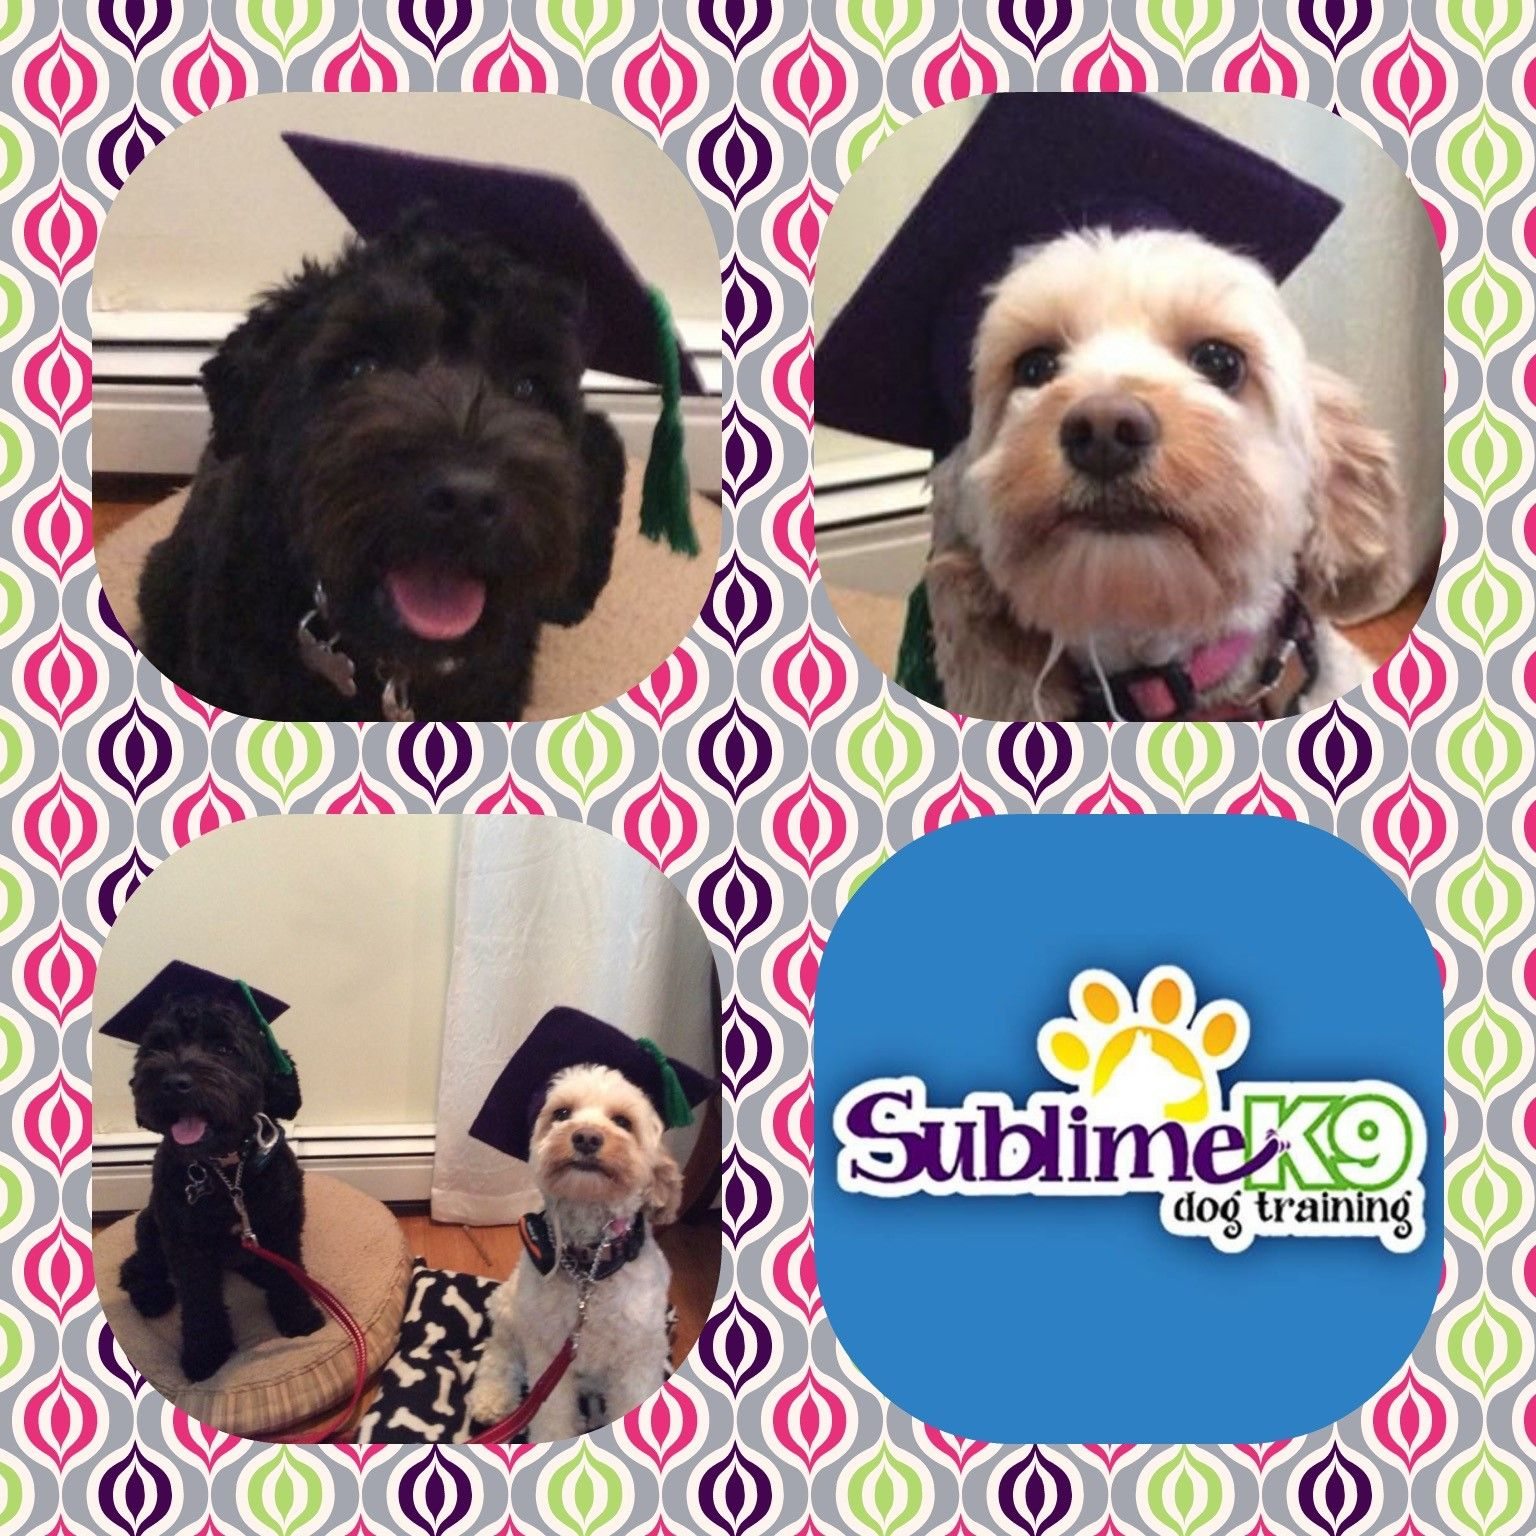 Long Island Dog Trainers Sublime K9 Dogs Therapy Dogs Dog